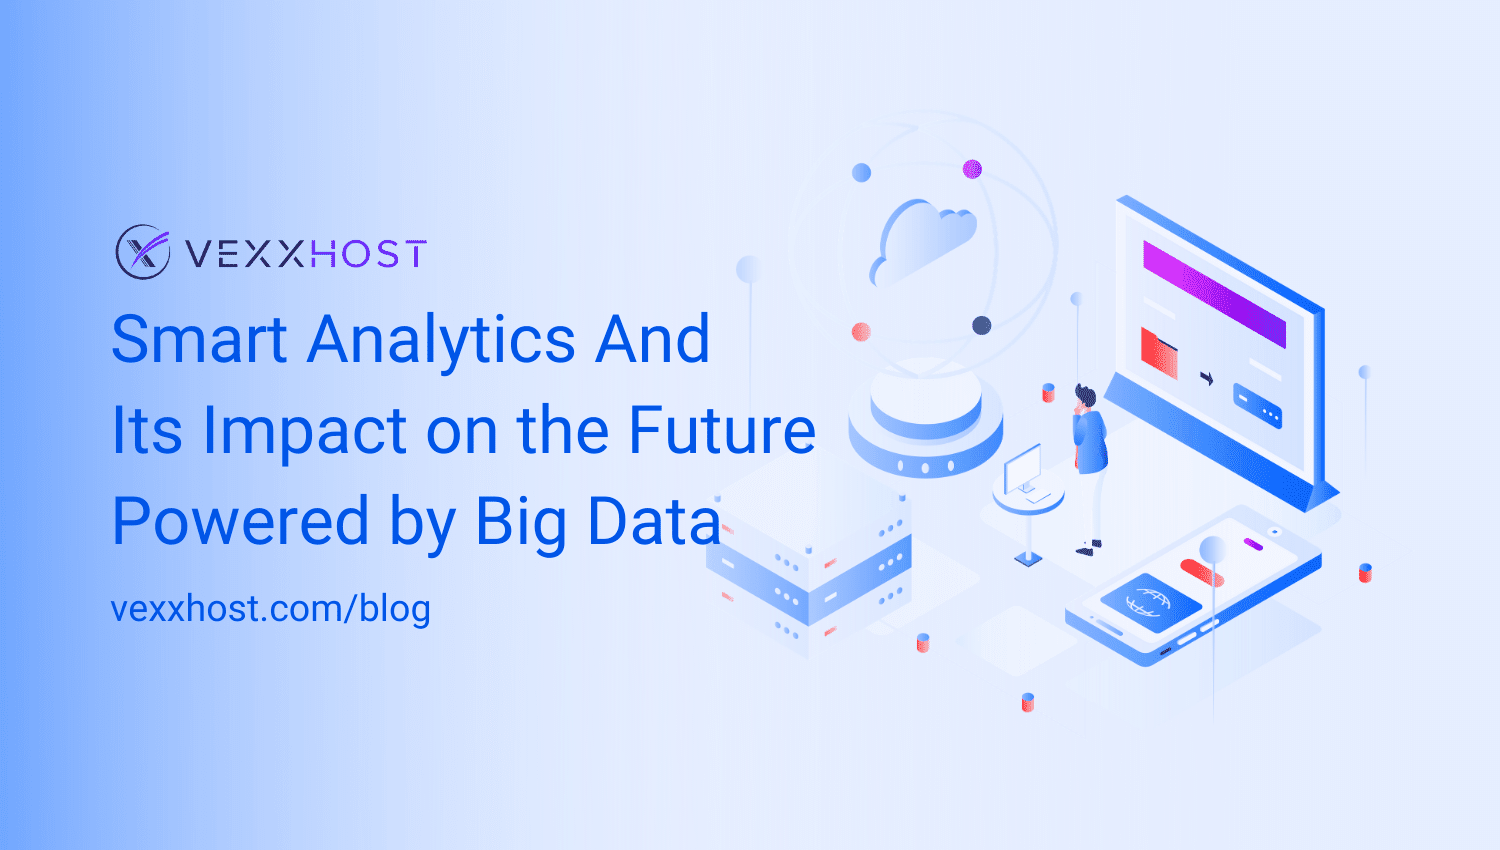 Smart Analytics And Its Impact on the Future Powered by Big Data